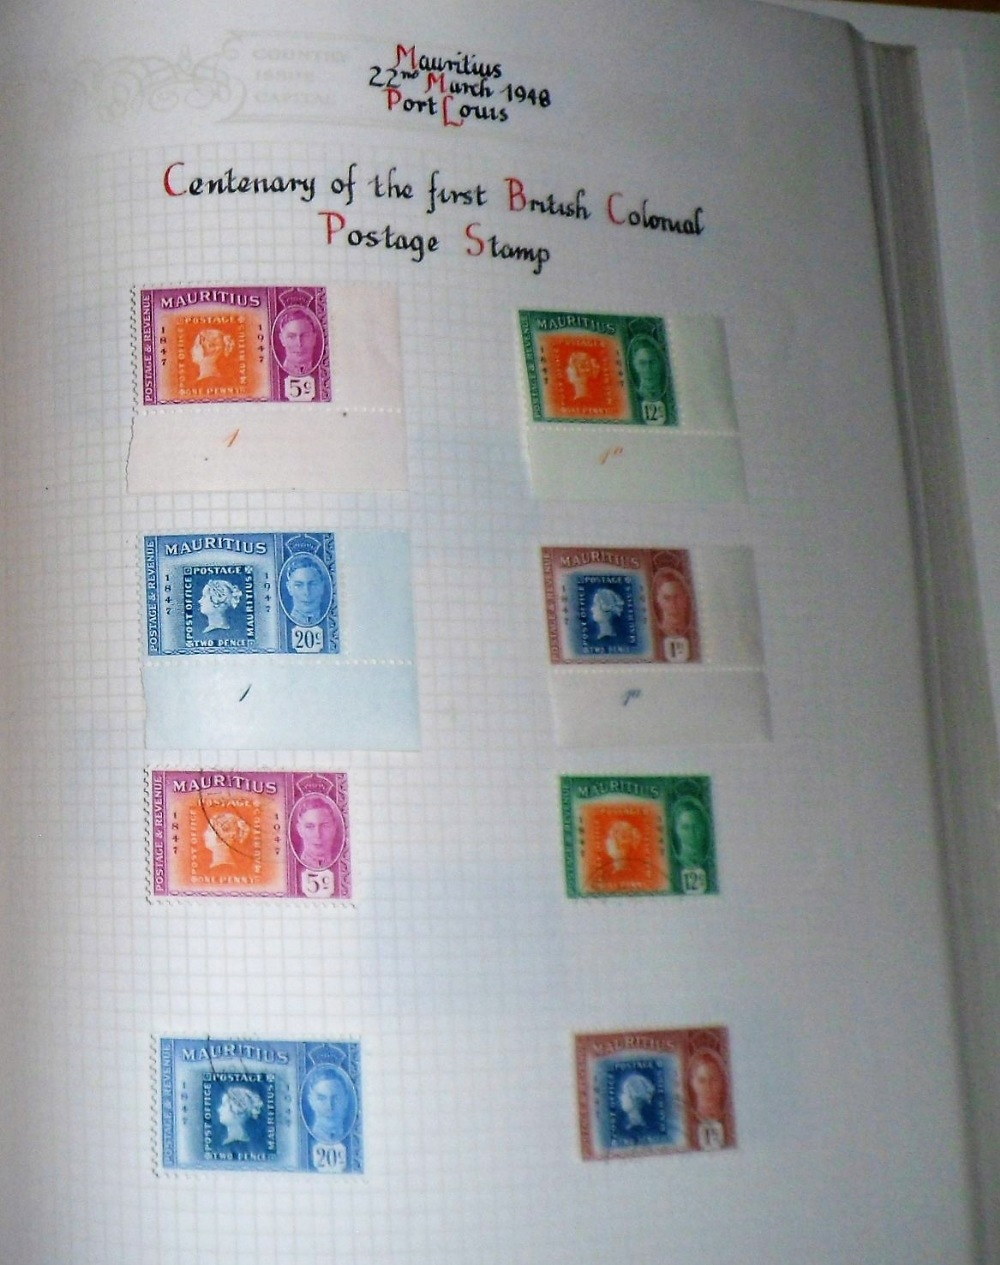 Lot 5 - Stamps, a New Age stamp album containing a good collection of GB and Commonwealth stamps, mostly